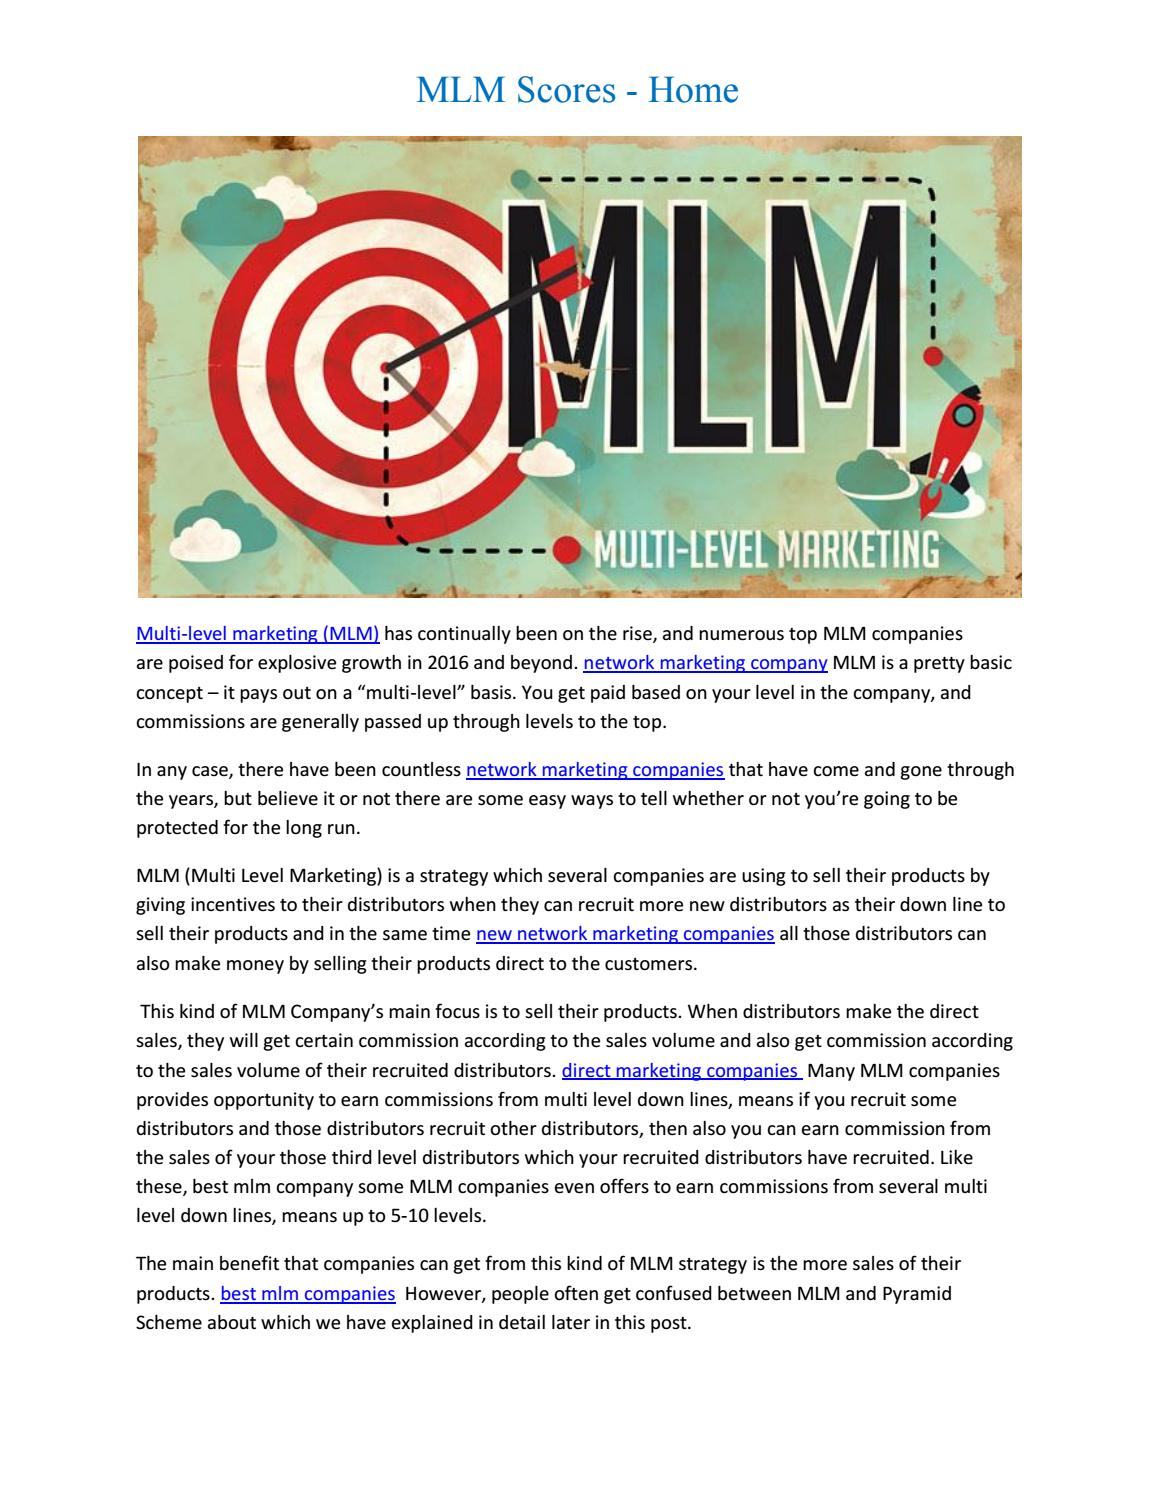 MLM Scores - Home by acclevantseo - issuu